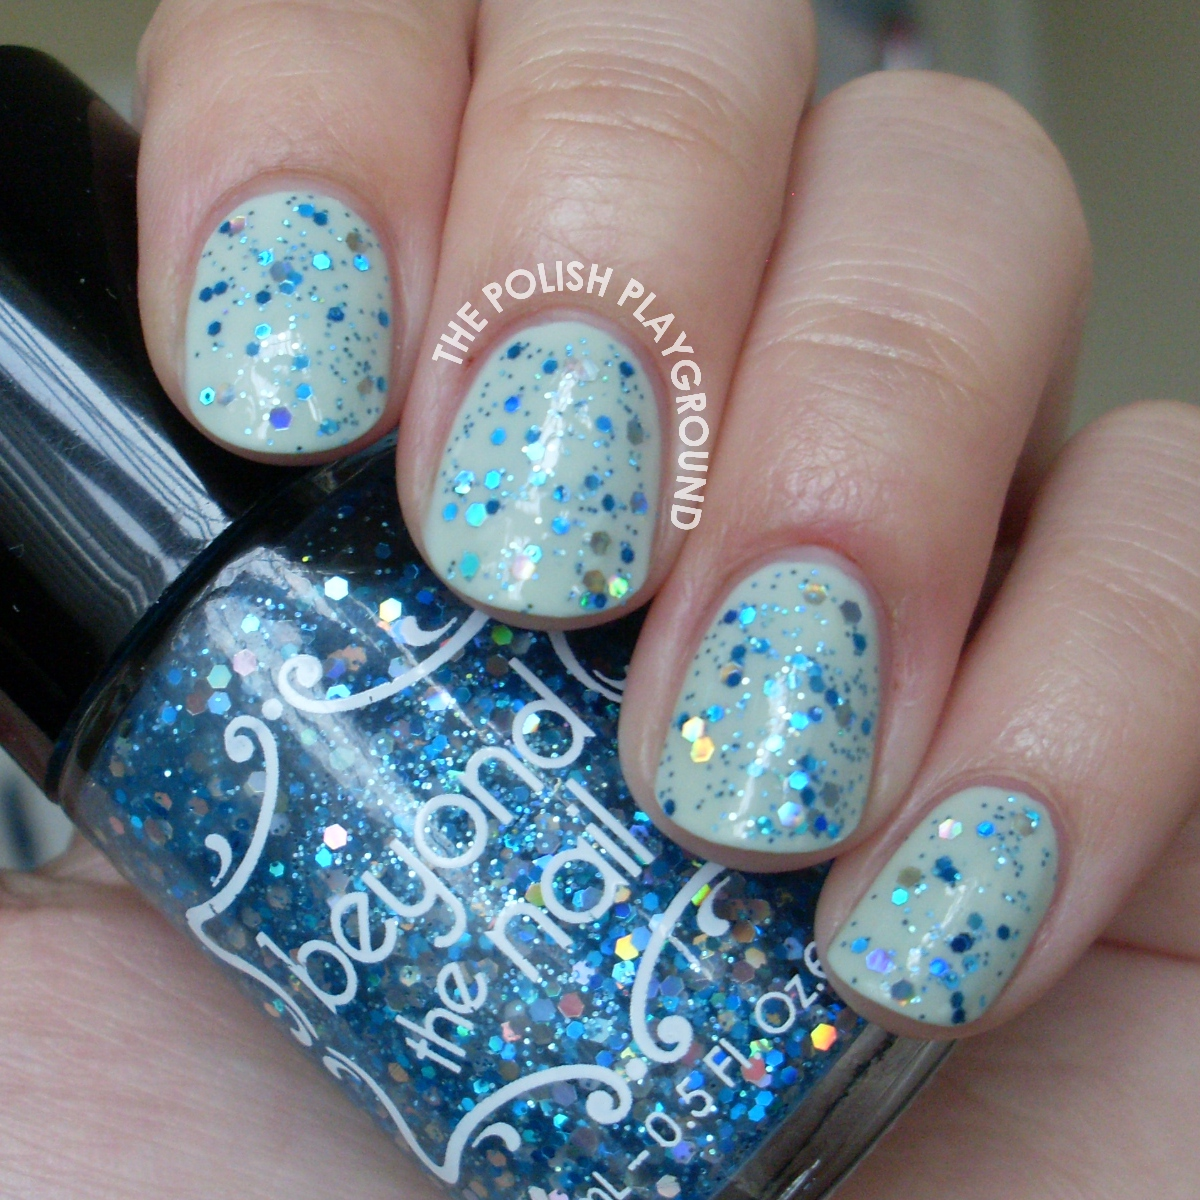 Beyond the Nail Shimmering Mermaid